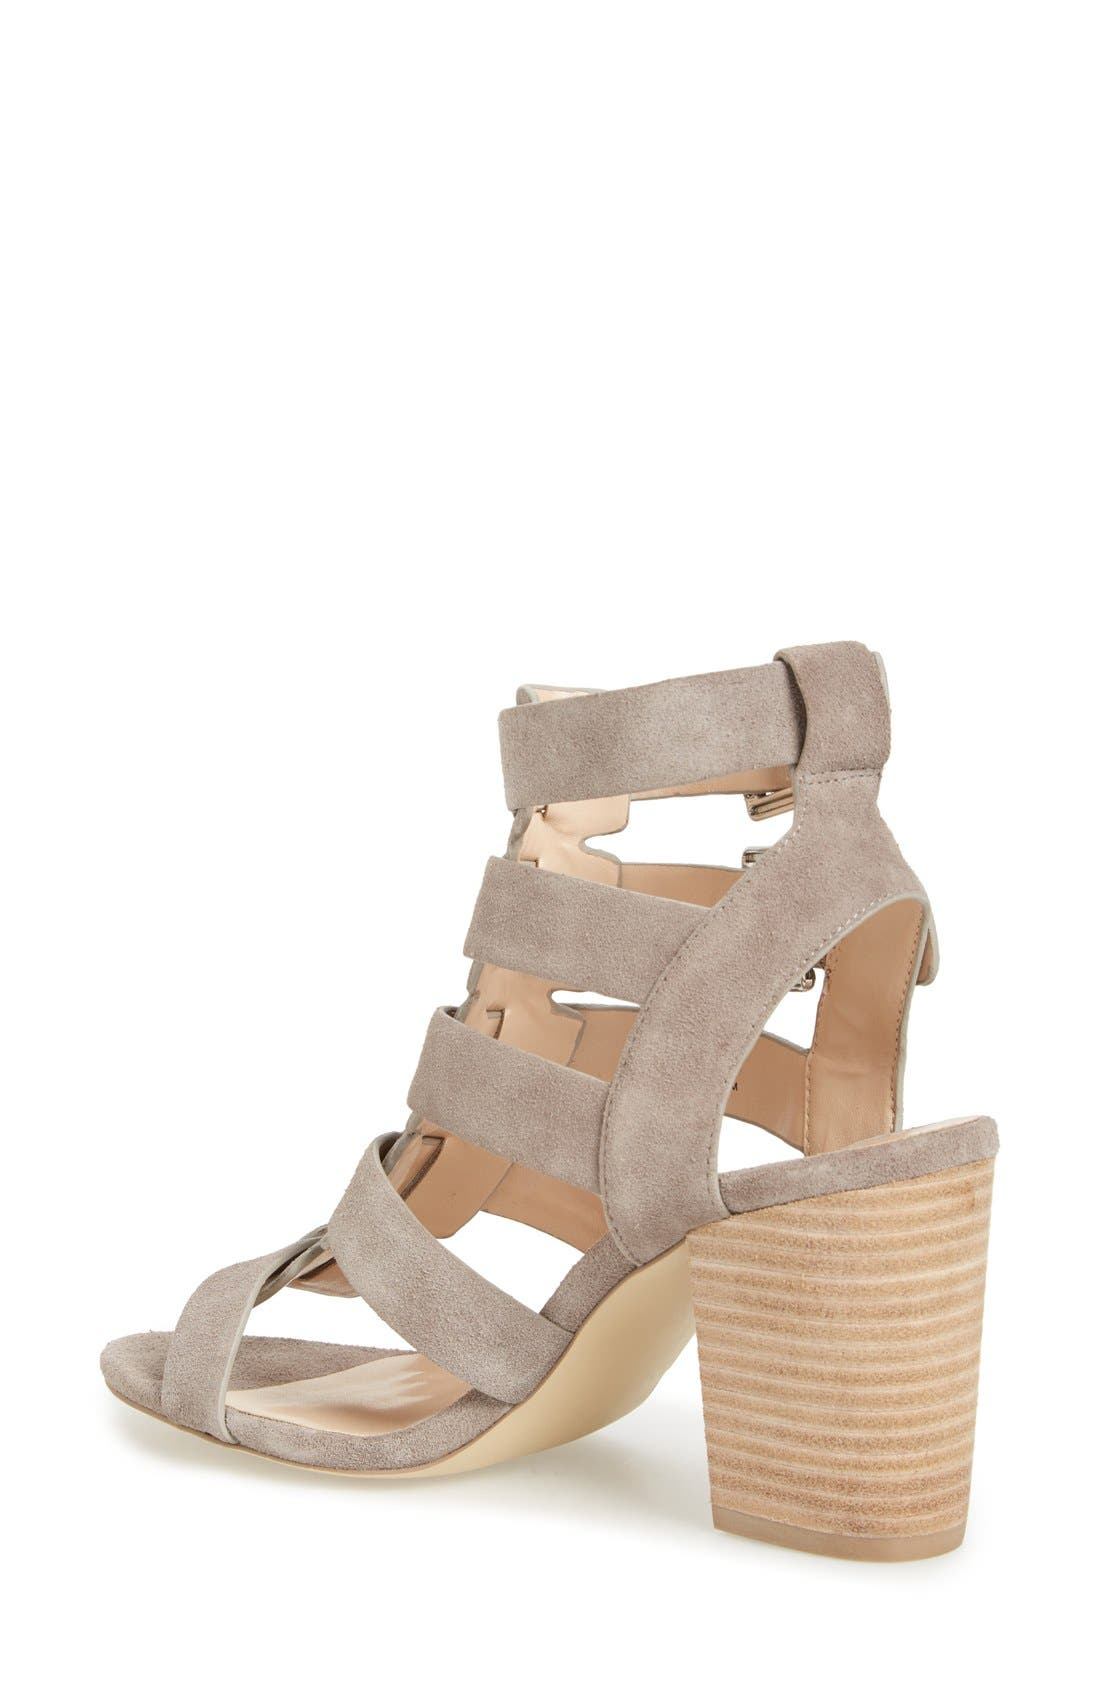 Alternate Image 2  - Sole Society 'Rhea' Sandal (Women)